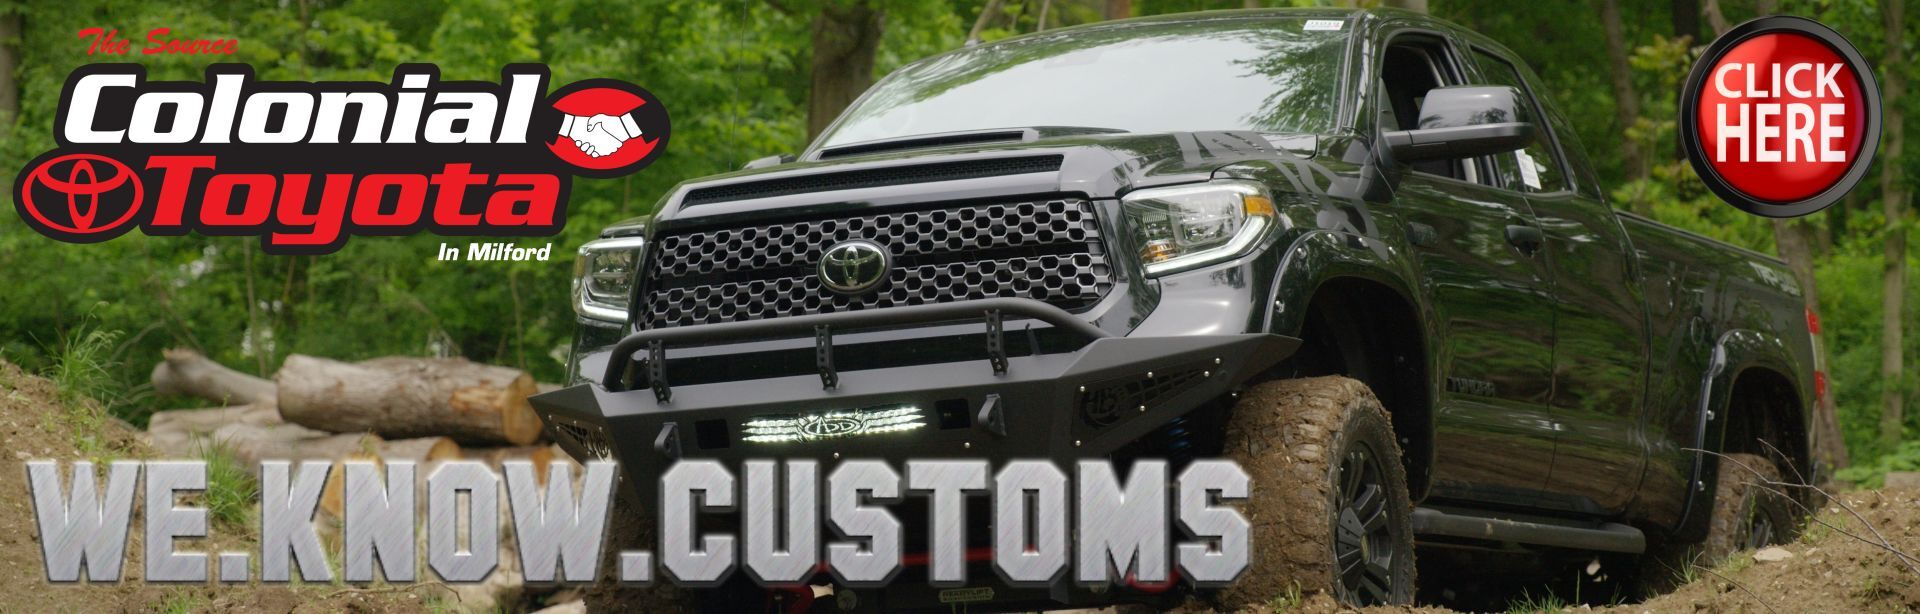 We Know Custom Trucks